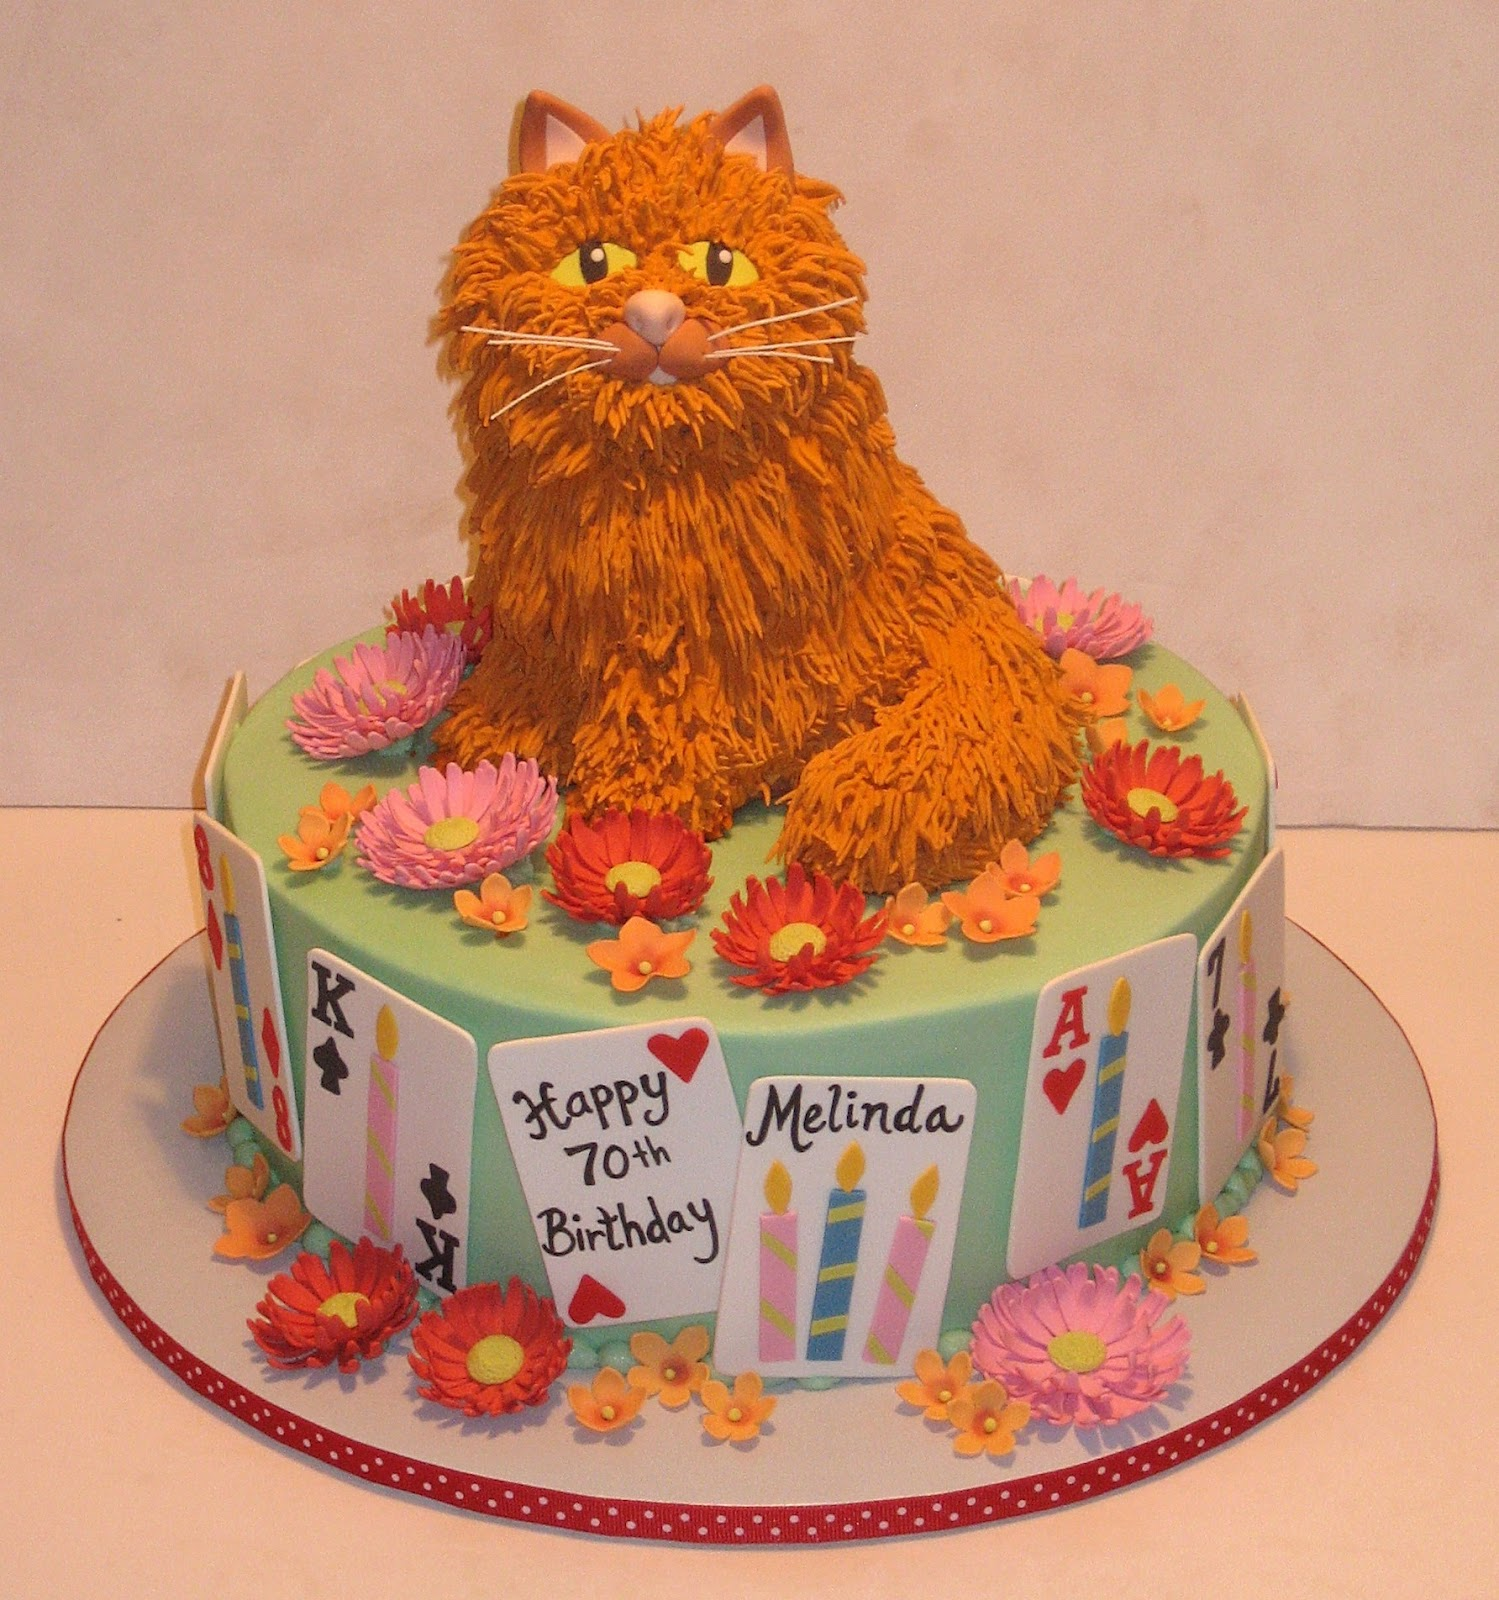 Birthday Orange Cat: 1000+ Images About Cakes .......cats On Pinterest